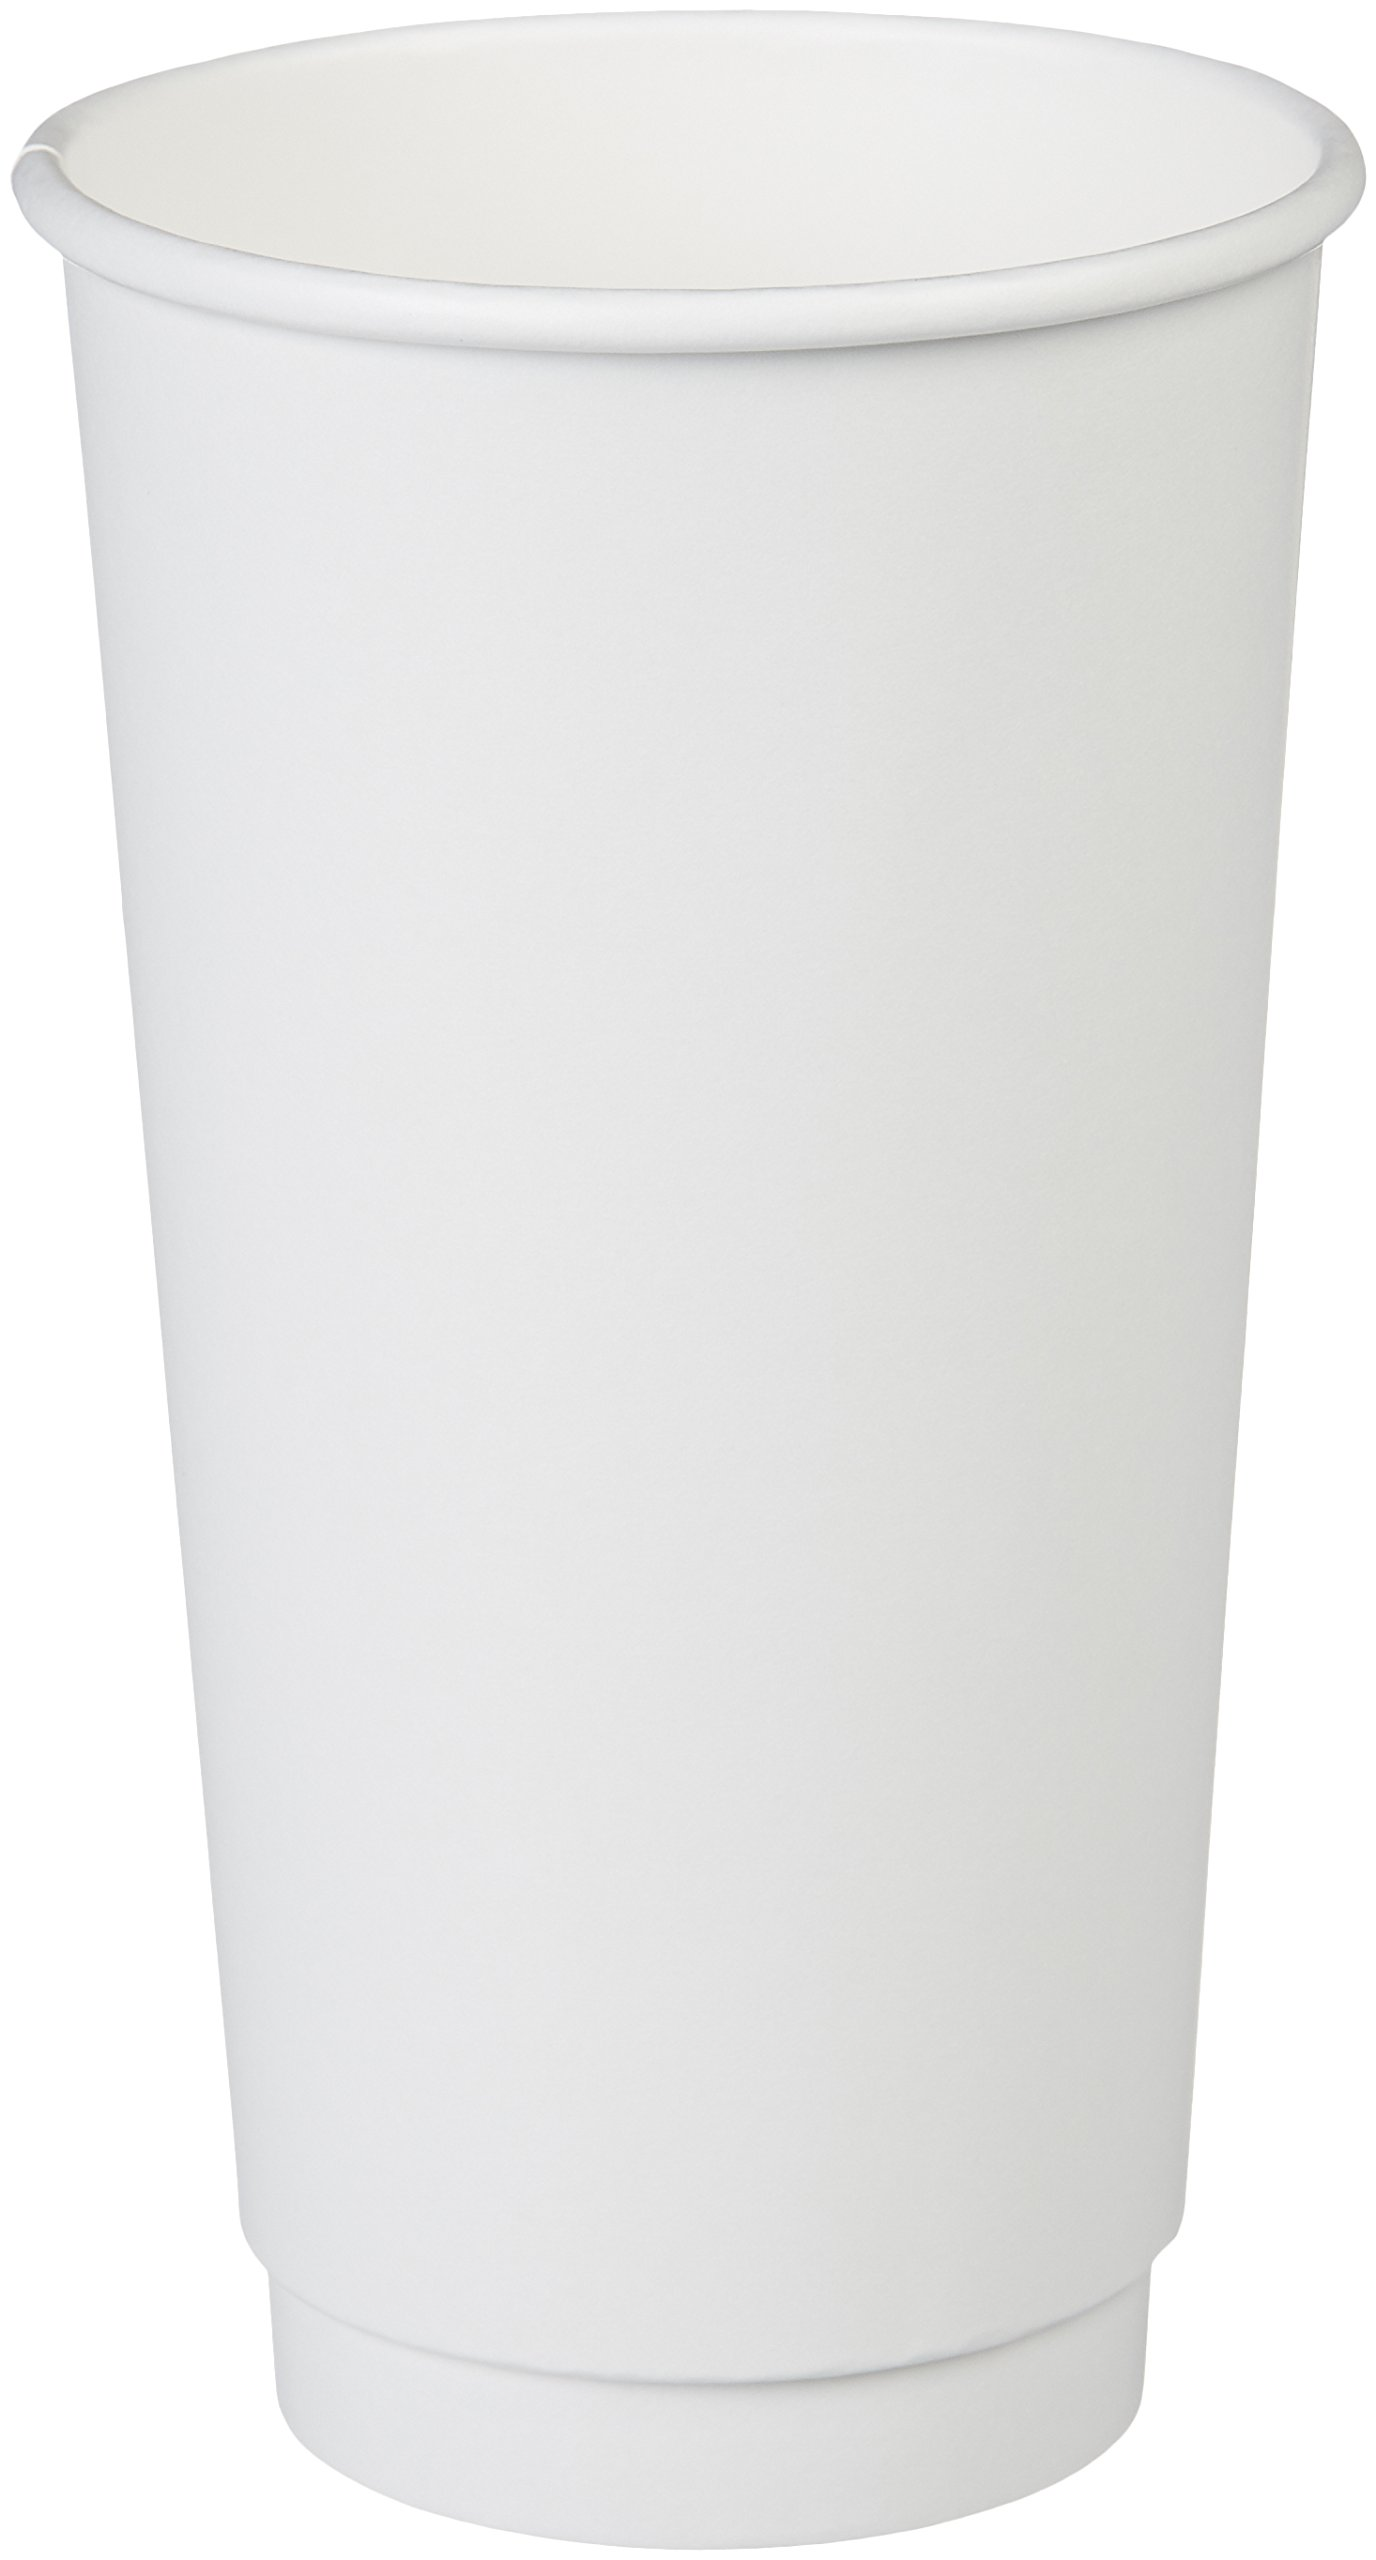 Amazon Basics Insulated Paper Cup, 20 oz, 300-Count